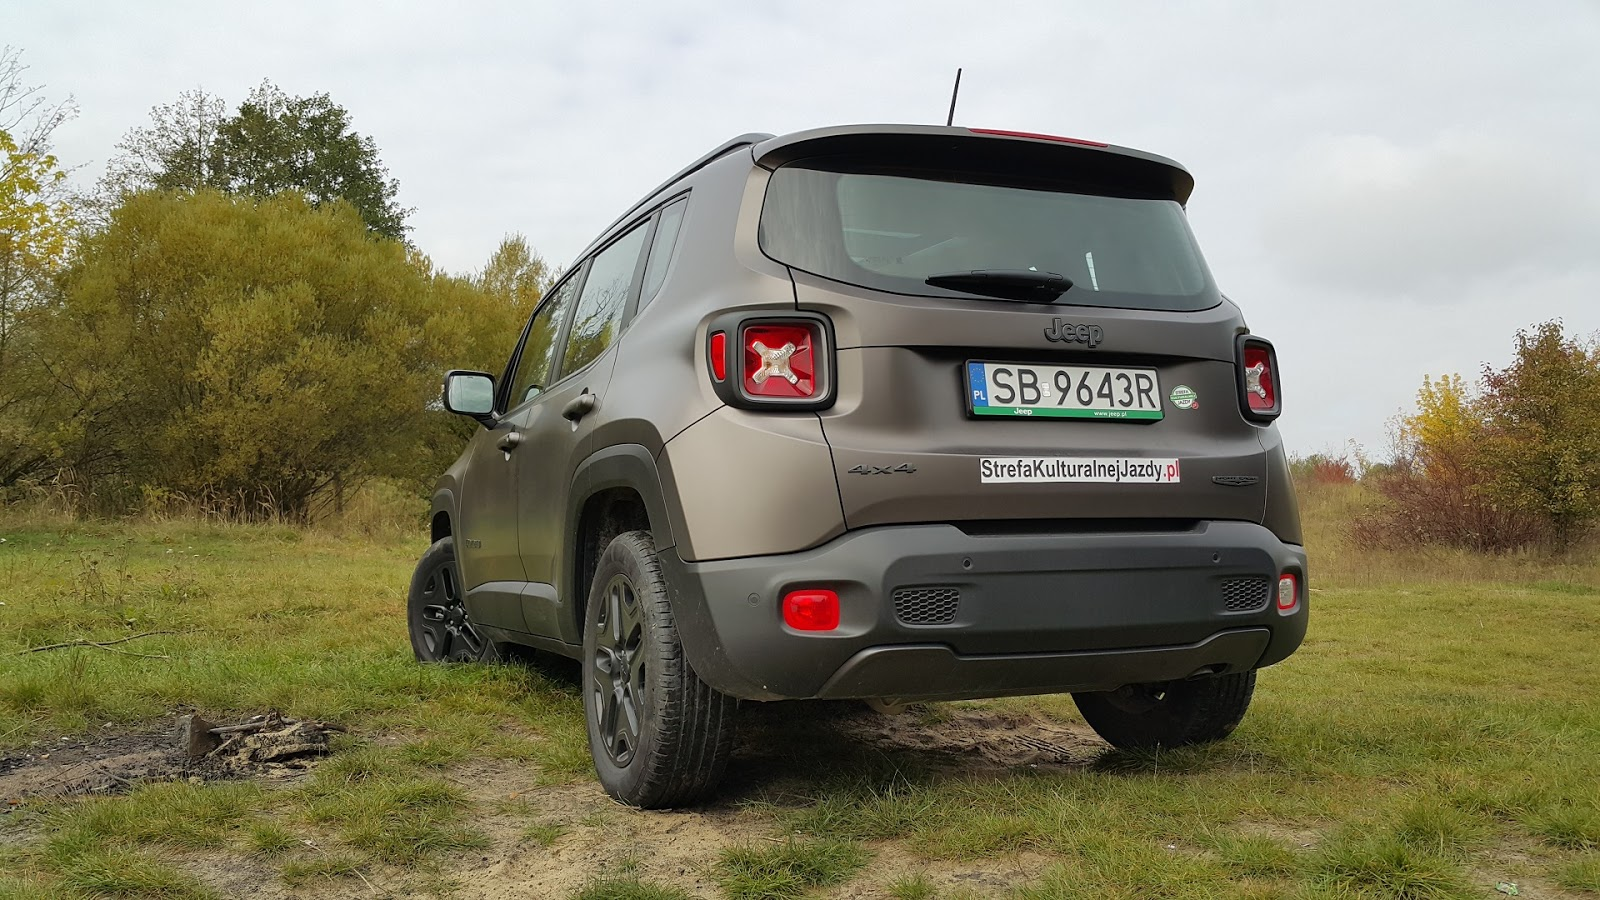 test jeep renegade night eagle 2 0 diesel 120km 4x4 czyli nie tylko miejski crossover. Black Bedroom Furniture Sets. Home Design Ideas